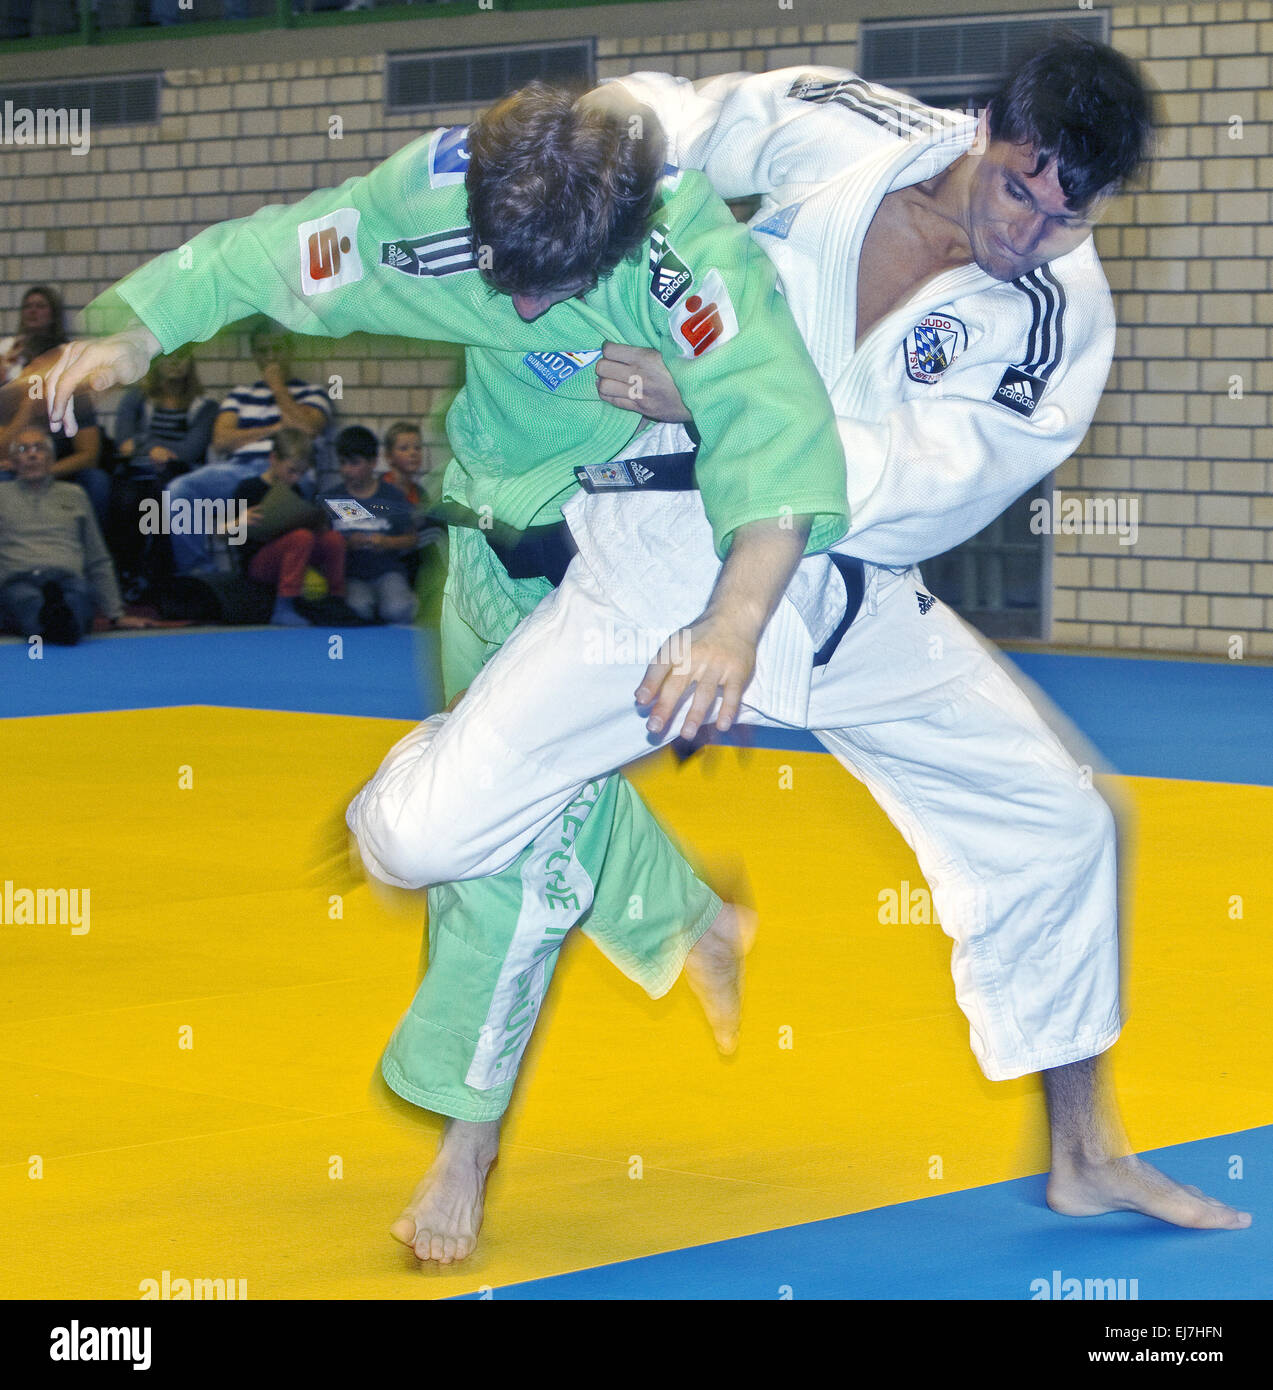 Two judoka's in the fight Witten, Germany - Stock Image